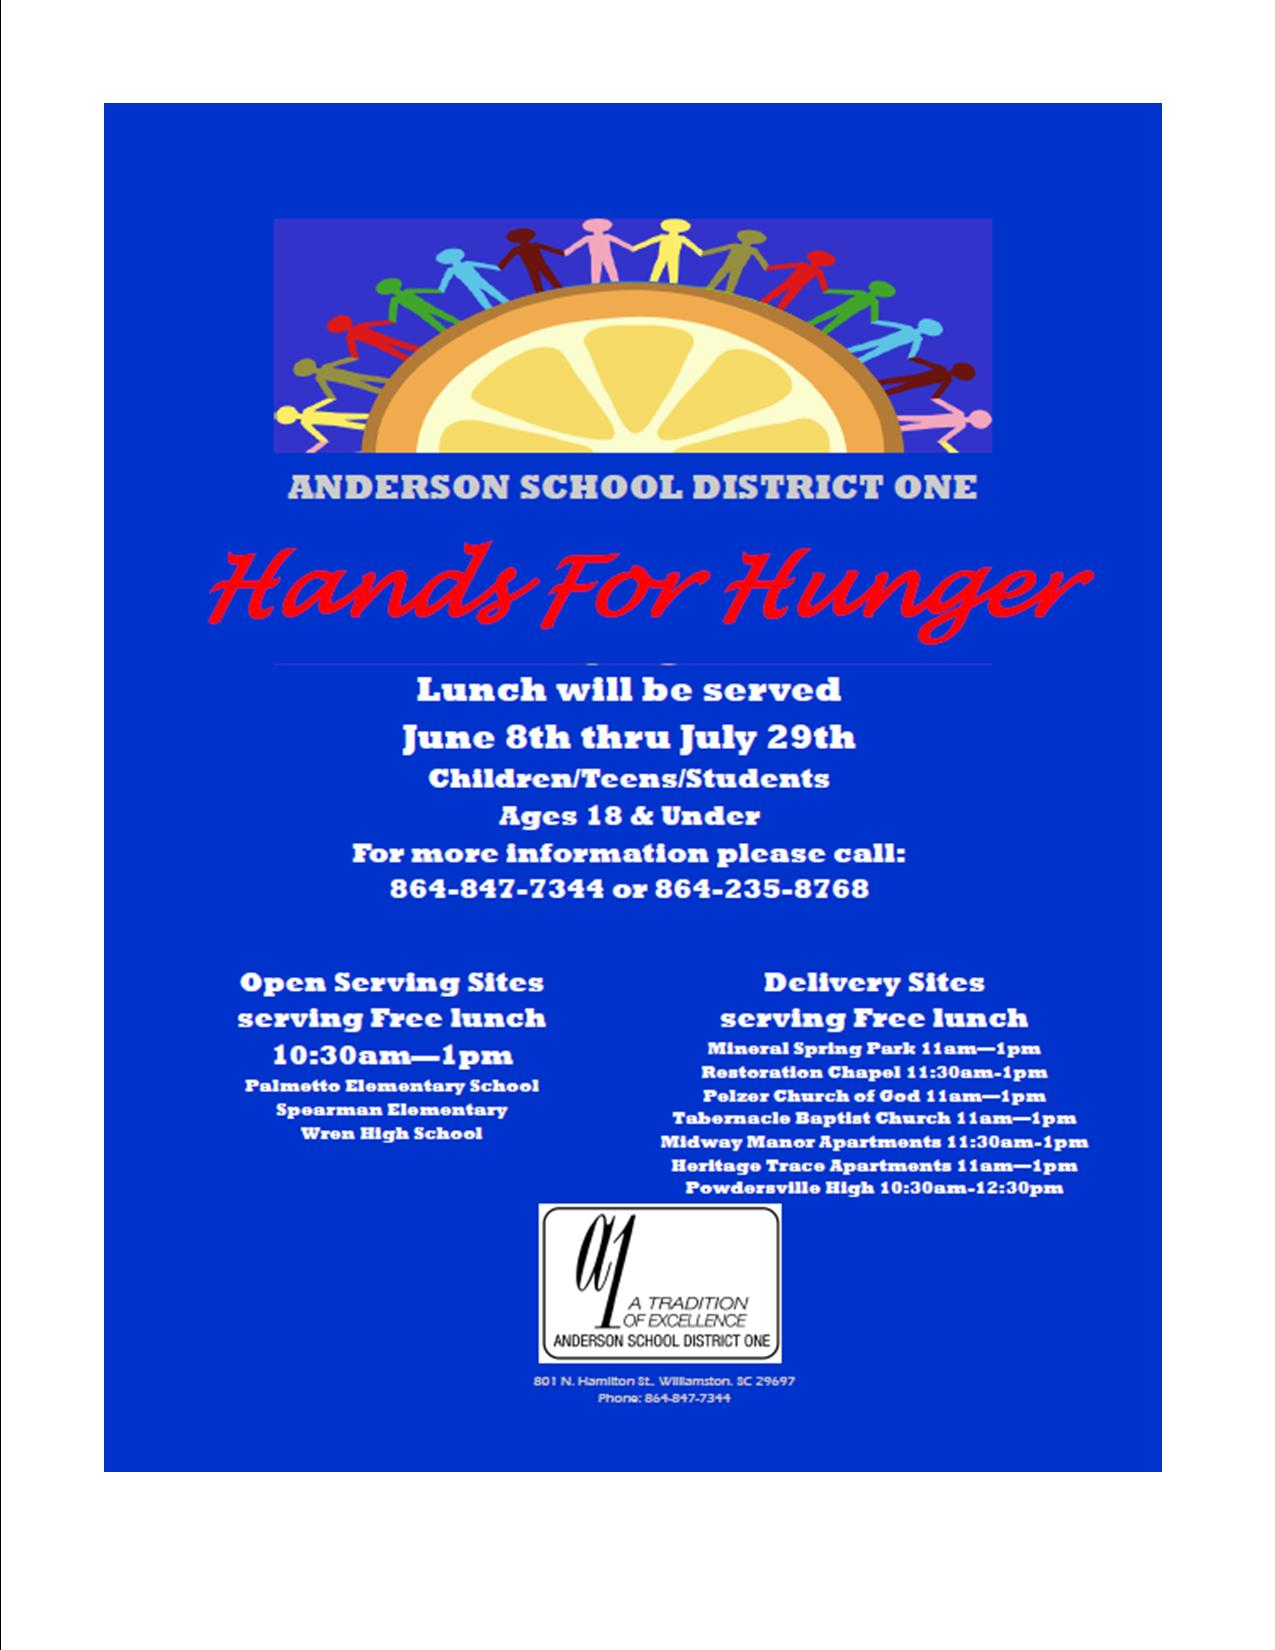 Hands for Hunger